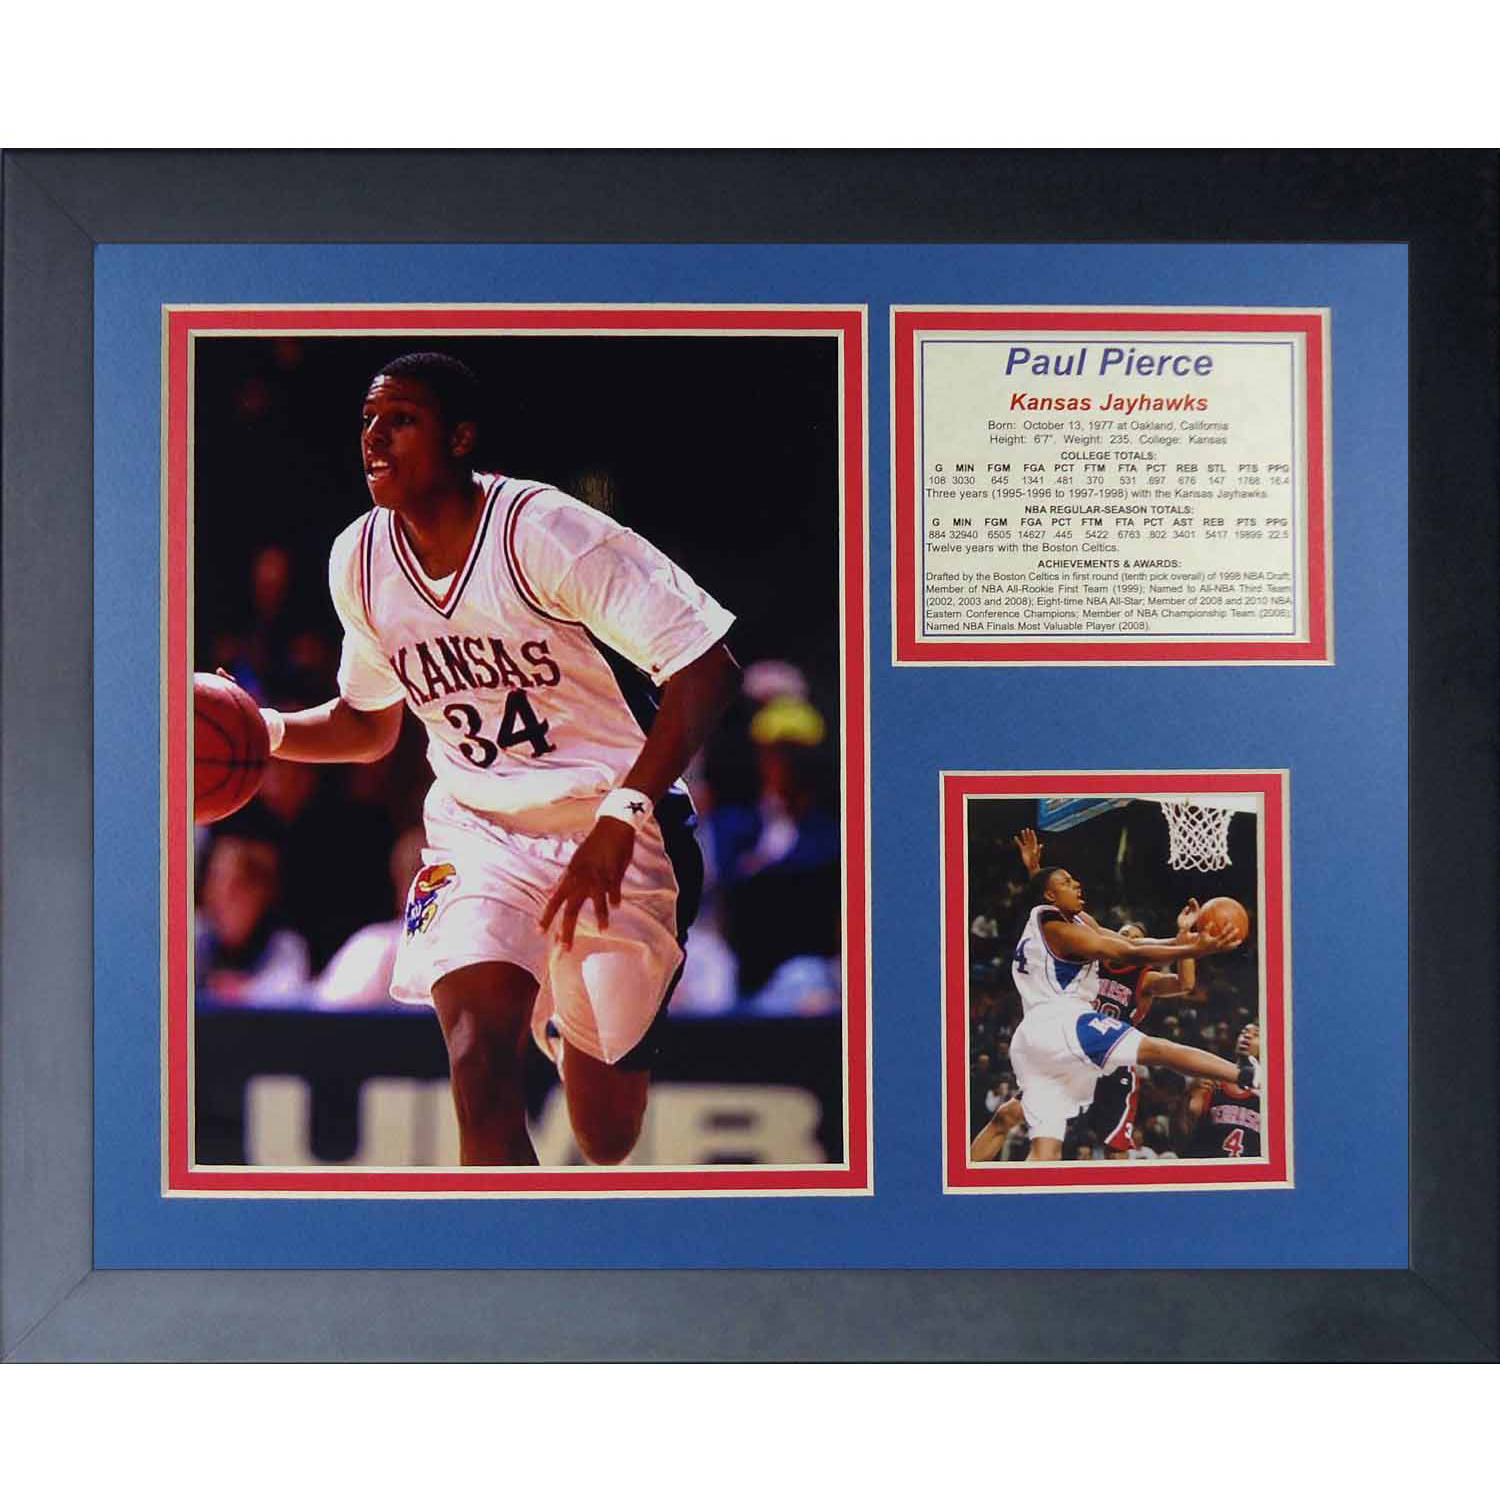 "Legends Never Die Paul Pierce Kansas Jayhawks Collage Photo Frame, 11"" x 14"""